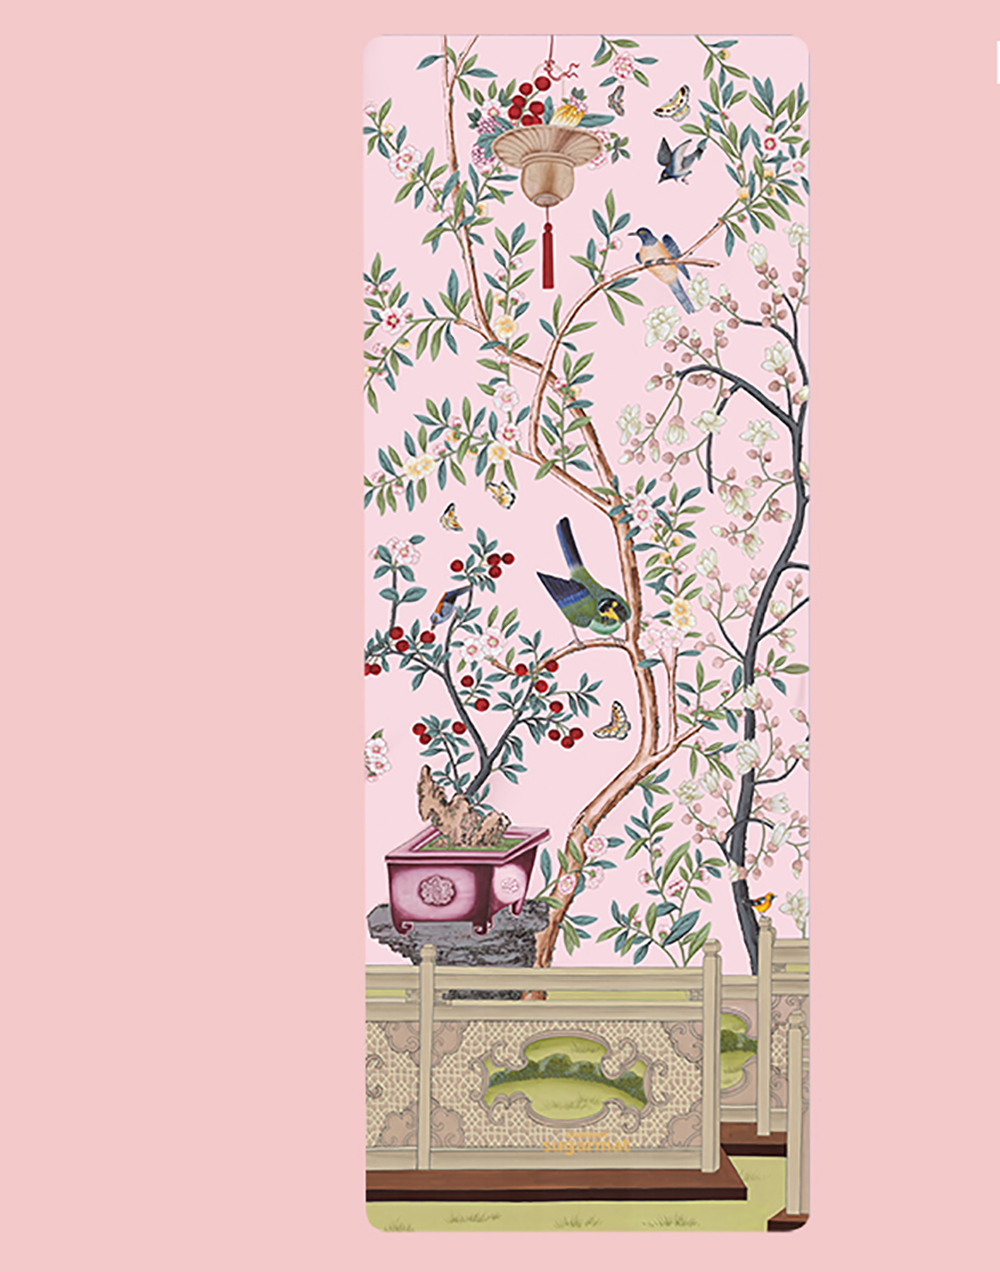 The Pink Pampas Panel 3 design from the Chinoiserie collection ($89).